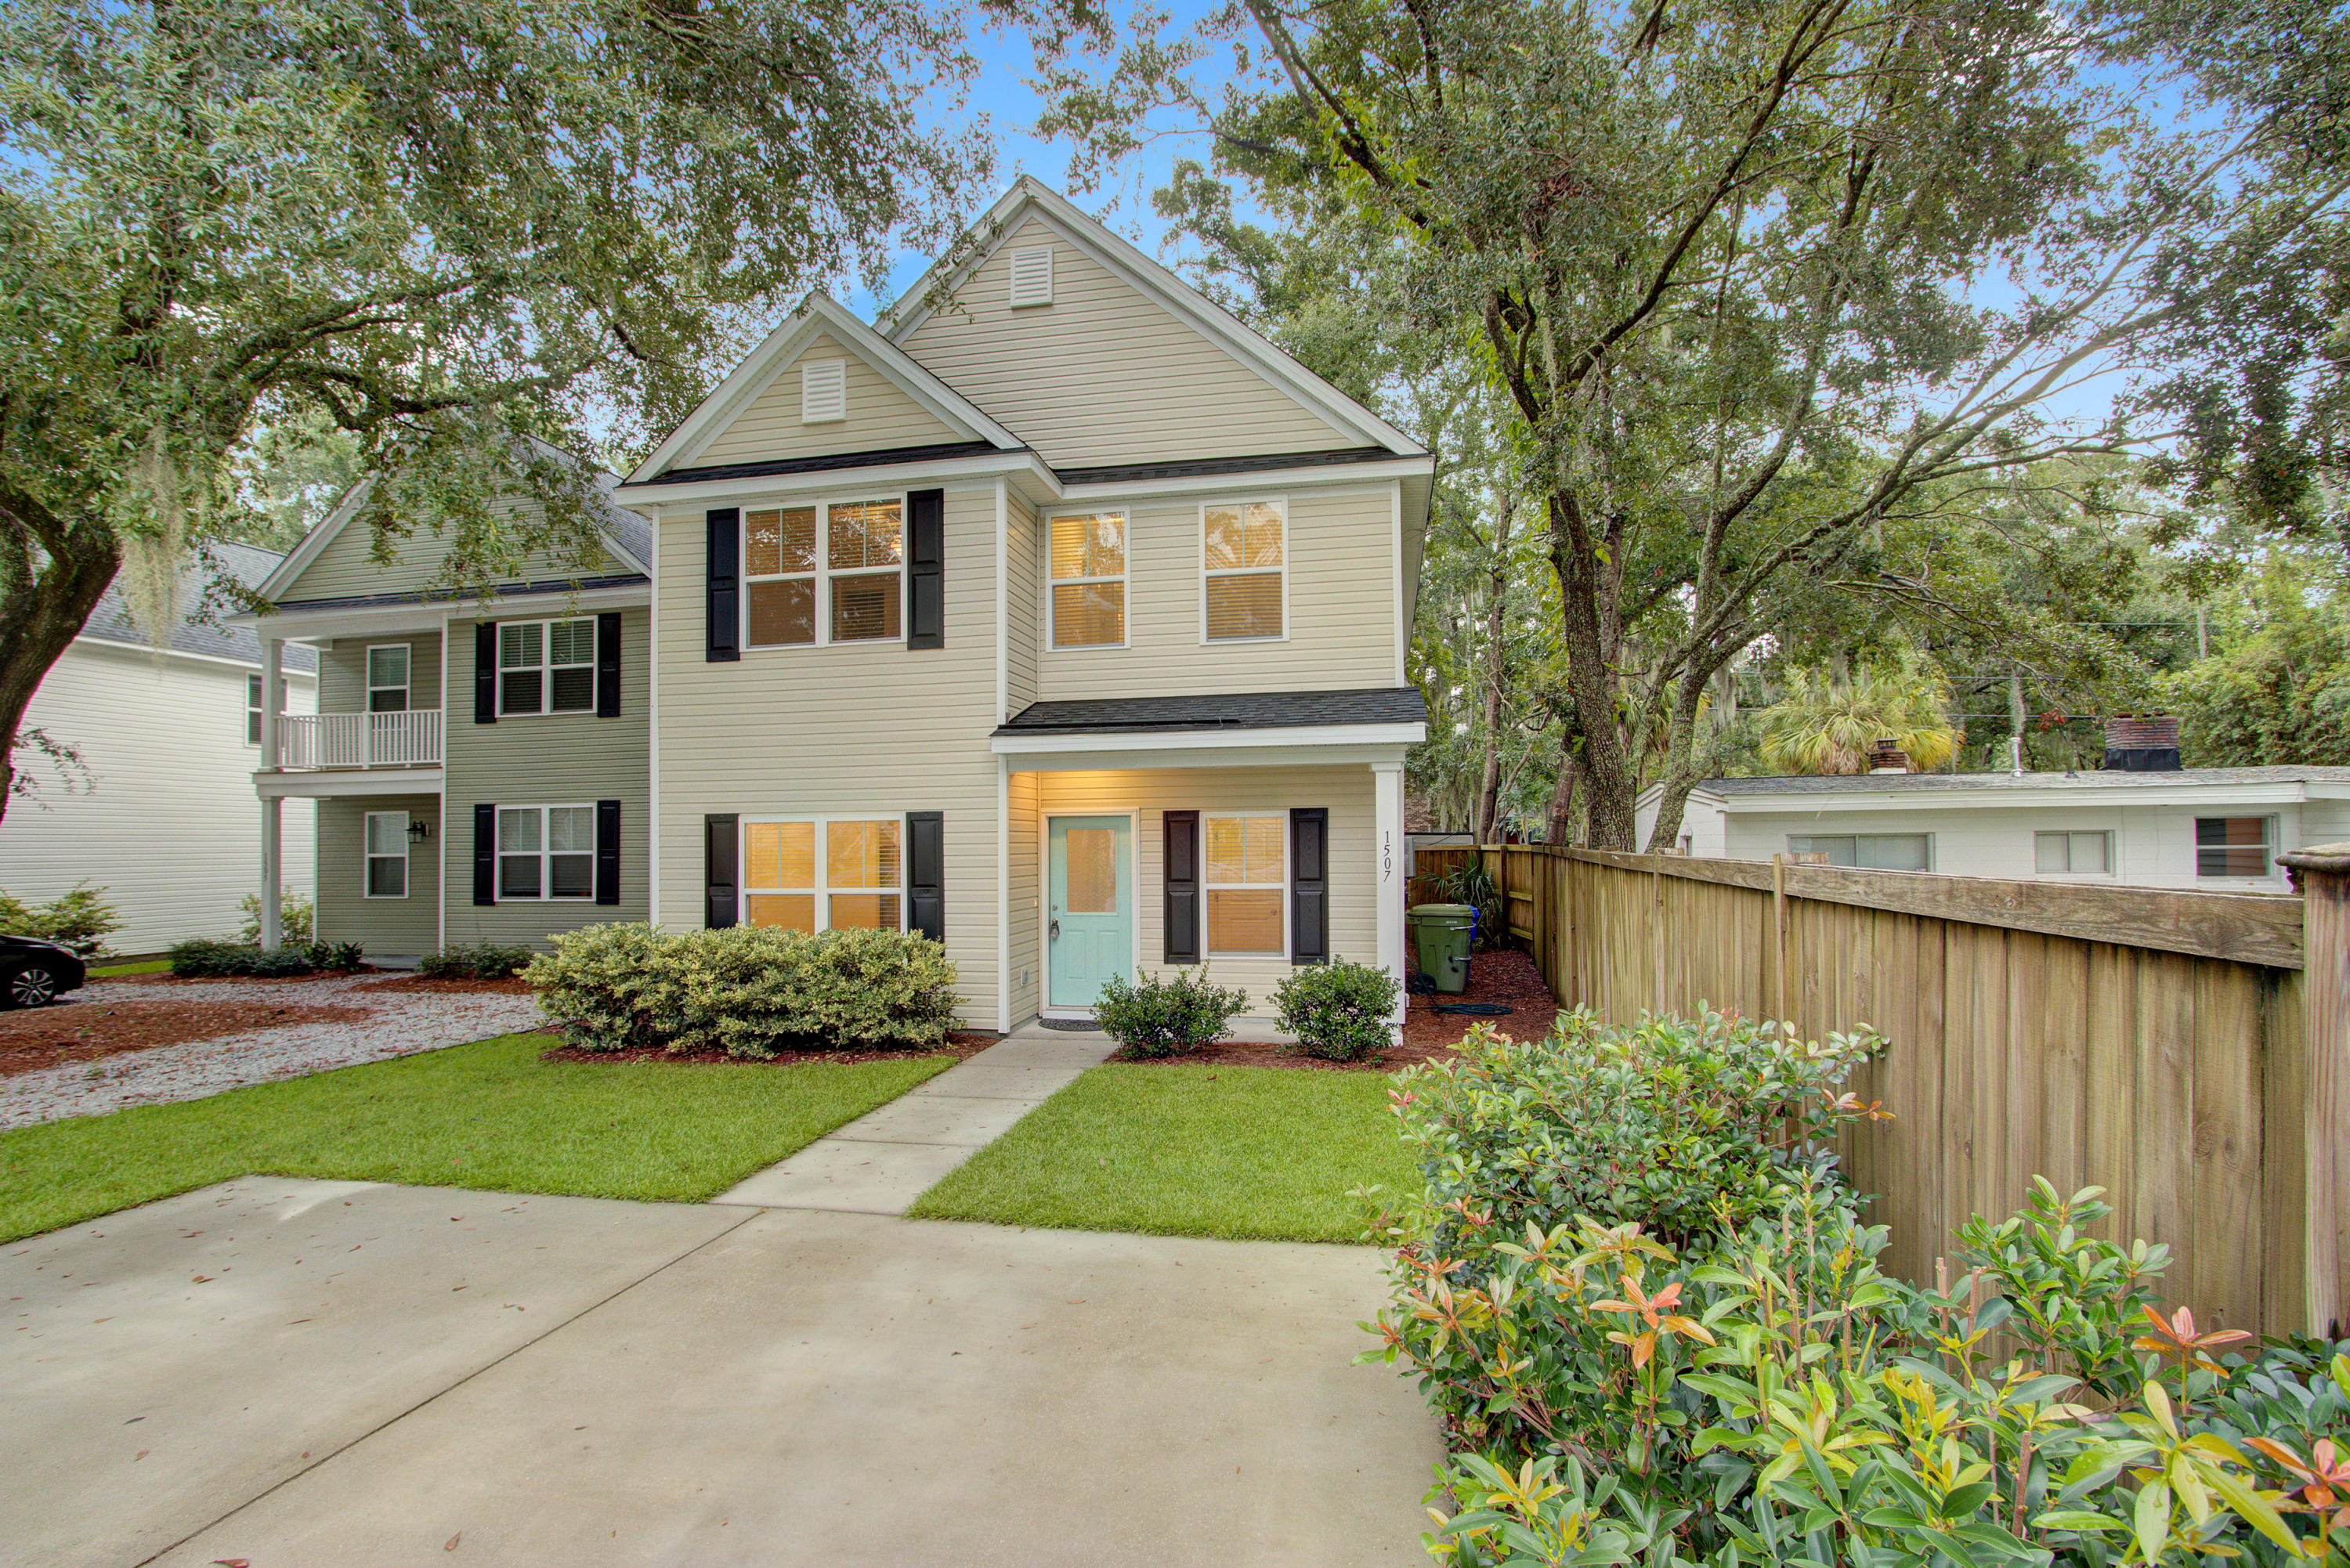 Fairfield Place Homes For Sale - 1507 Morgan Campbell, Charleston, SC - 0